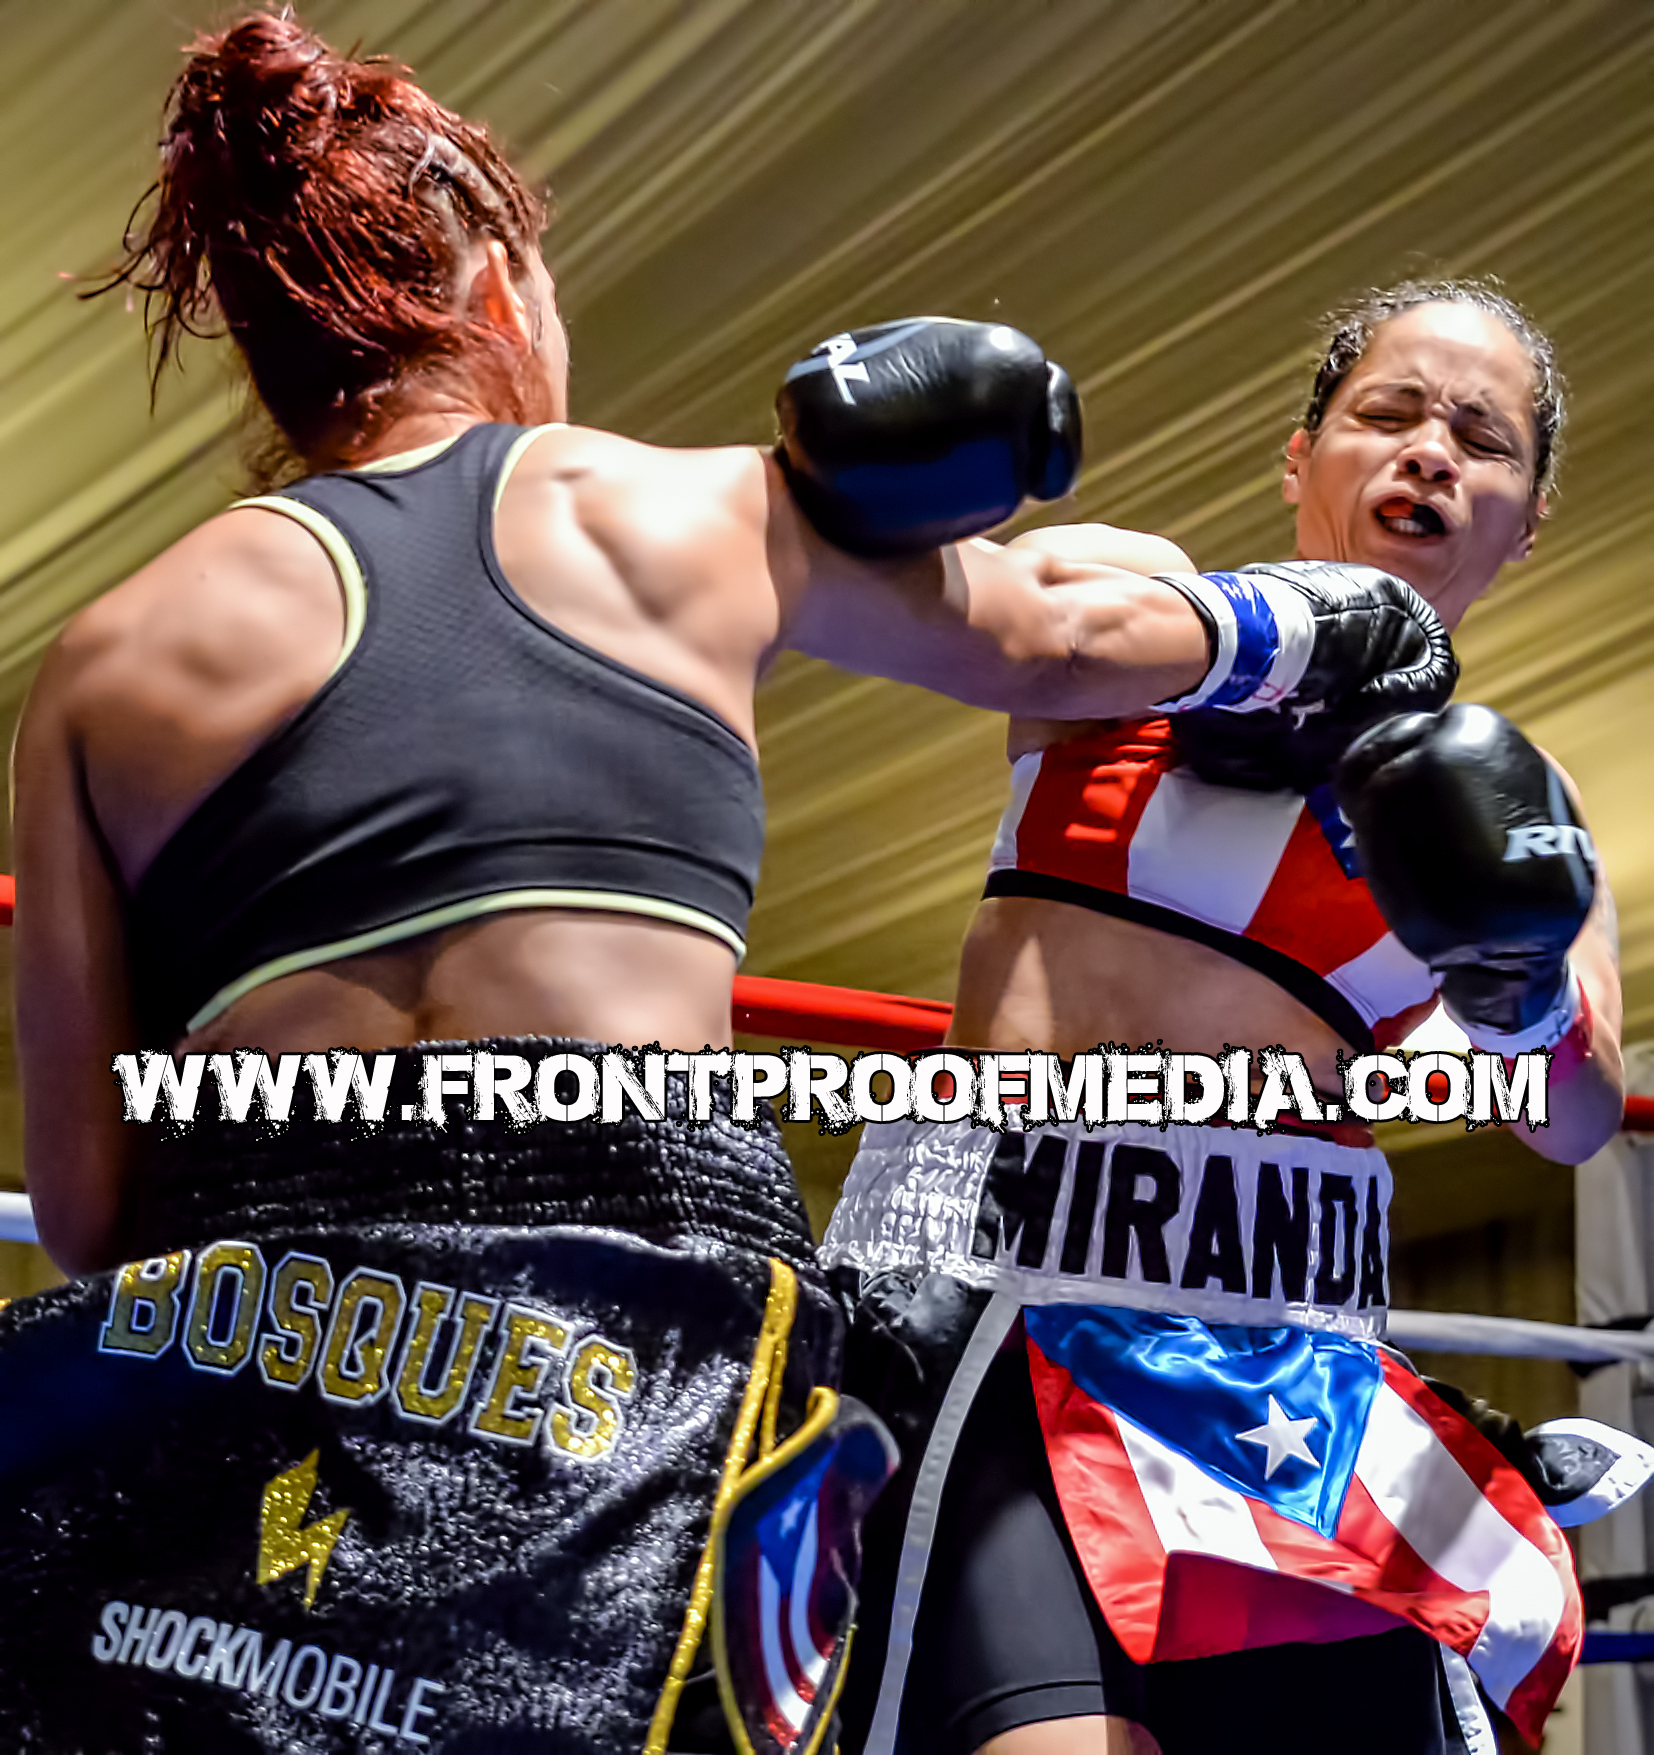 Noemi Bosques lands a punishing right hand to the chin of Marisol Miranda during their WIBA title fight on Aug 22, 2015 in St. Petersburg, FL